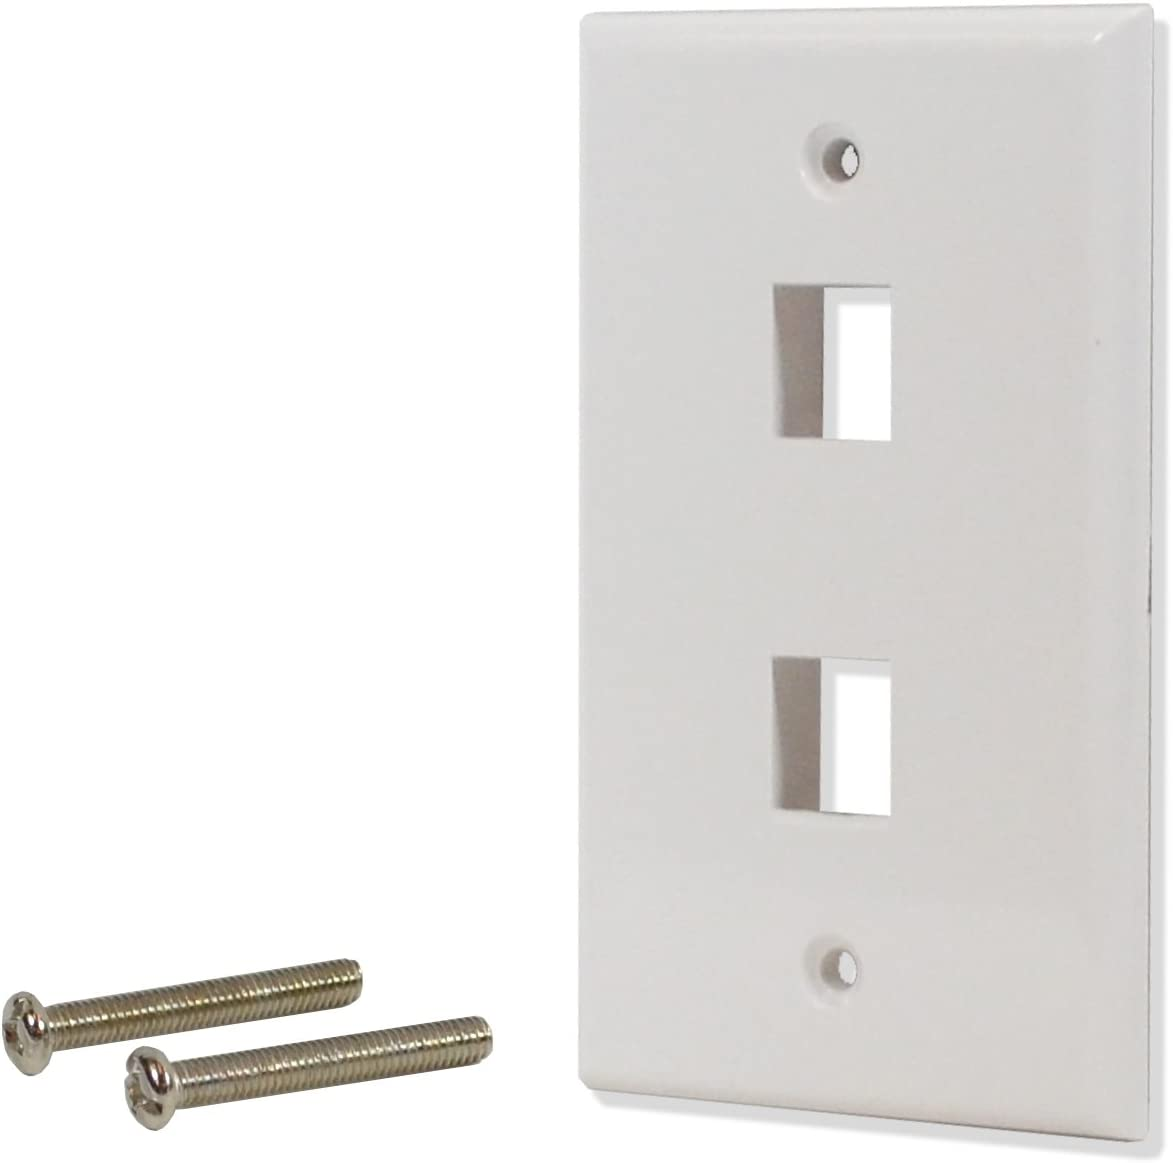 LOT of 2 Wall Plate 3 Hole Port Jack Keystone Audio Video Wallplate White